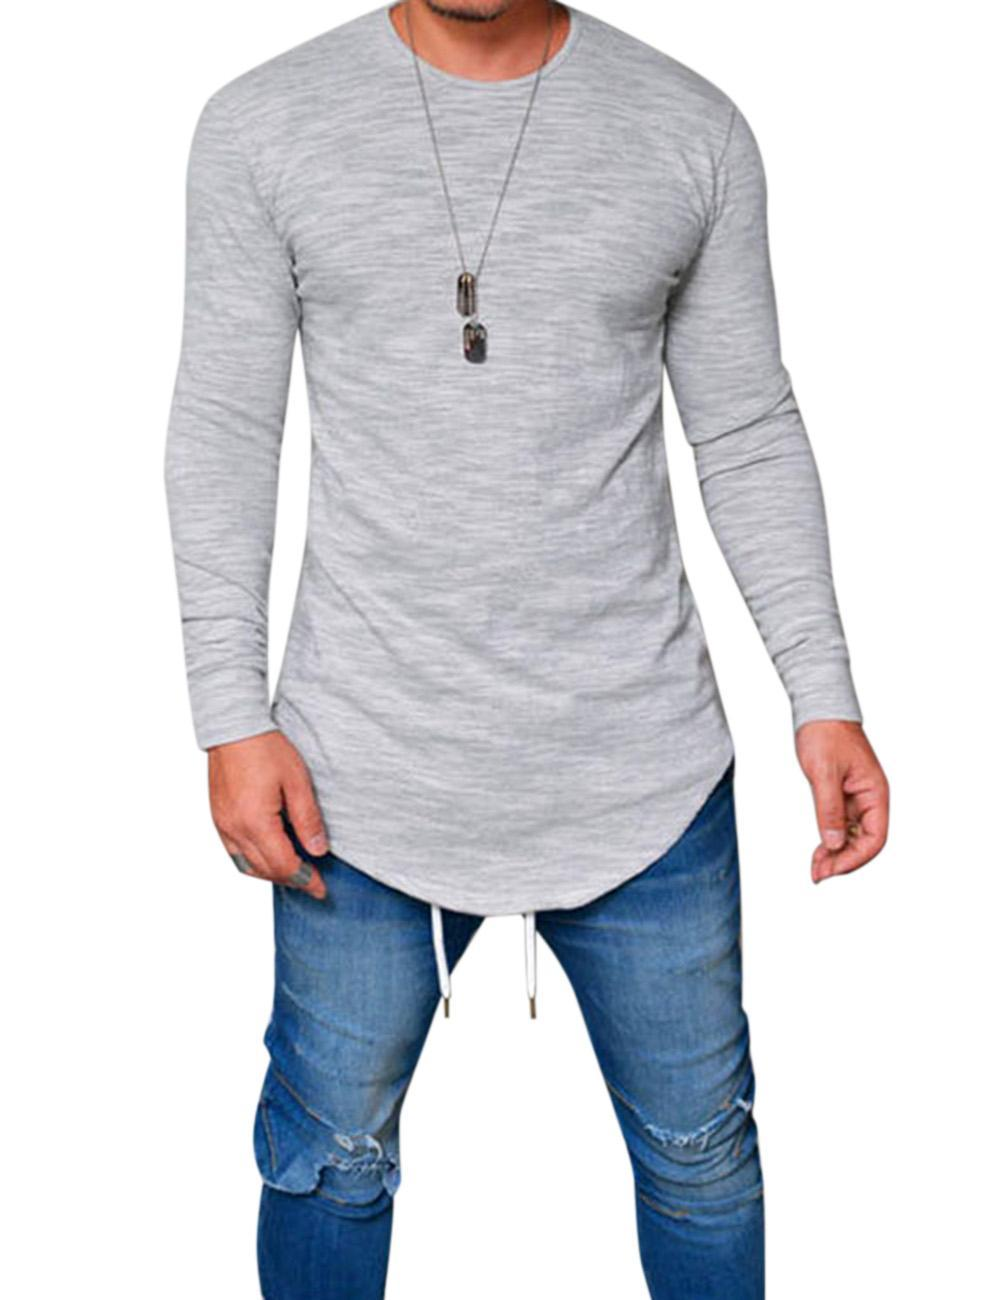 4acc467da9684f Product details of Free Spirit Men Simple Casual Solid Color Round Neck T- shirt Slim Long Sleeve Tops Clothes